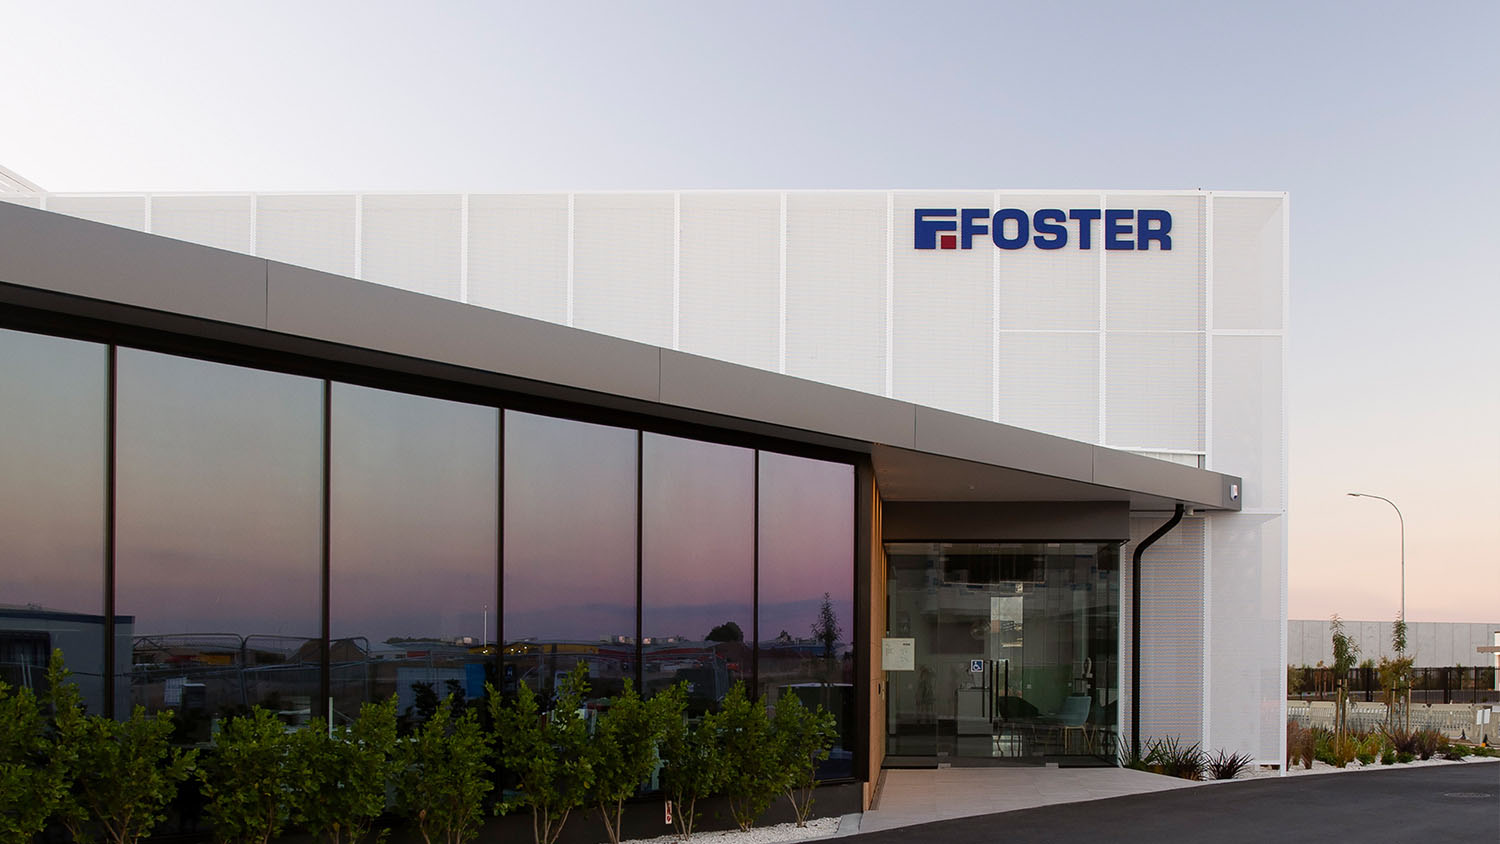 Fosters Headquarters